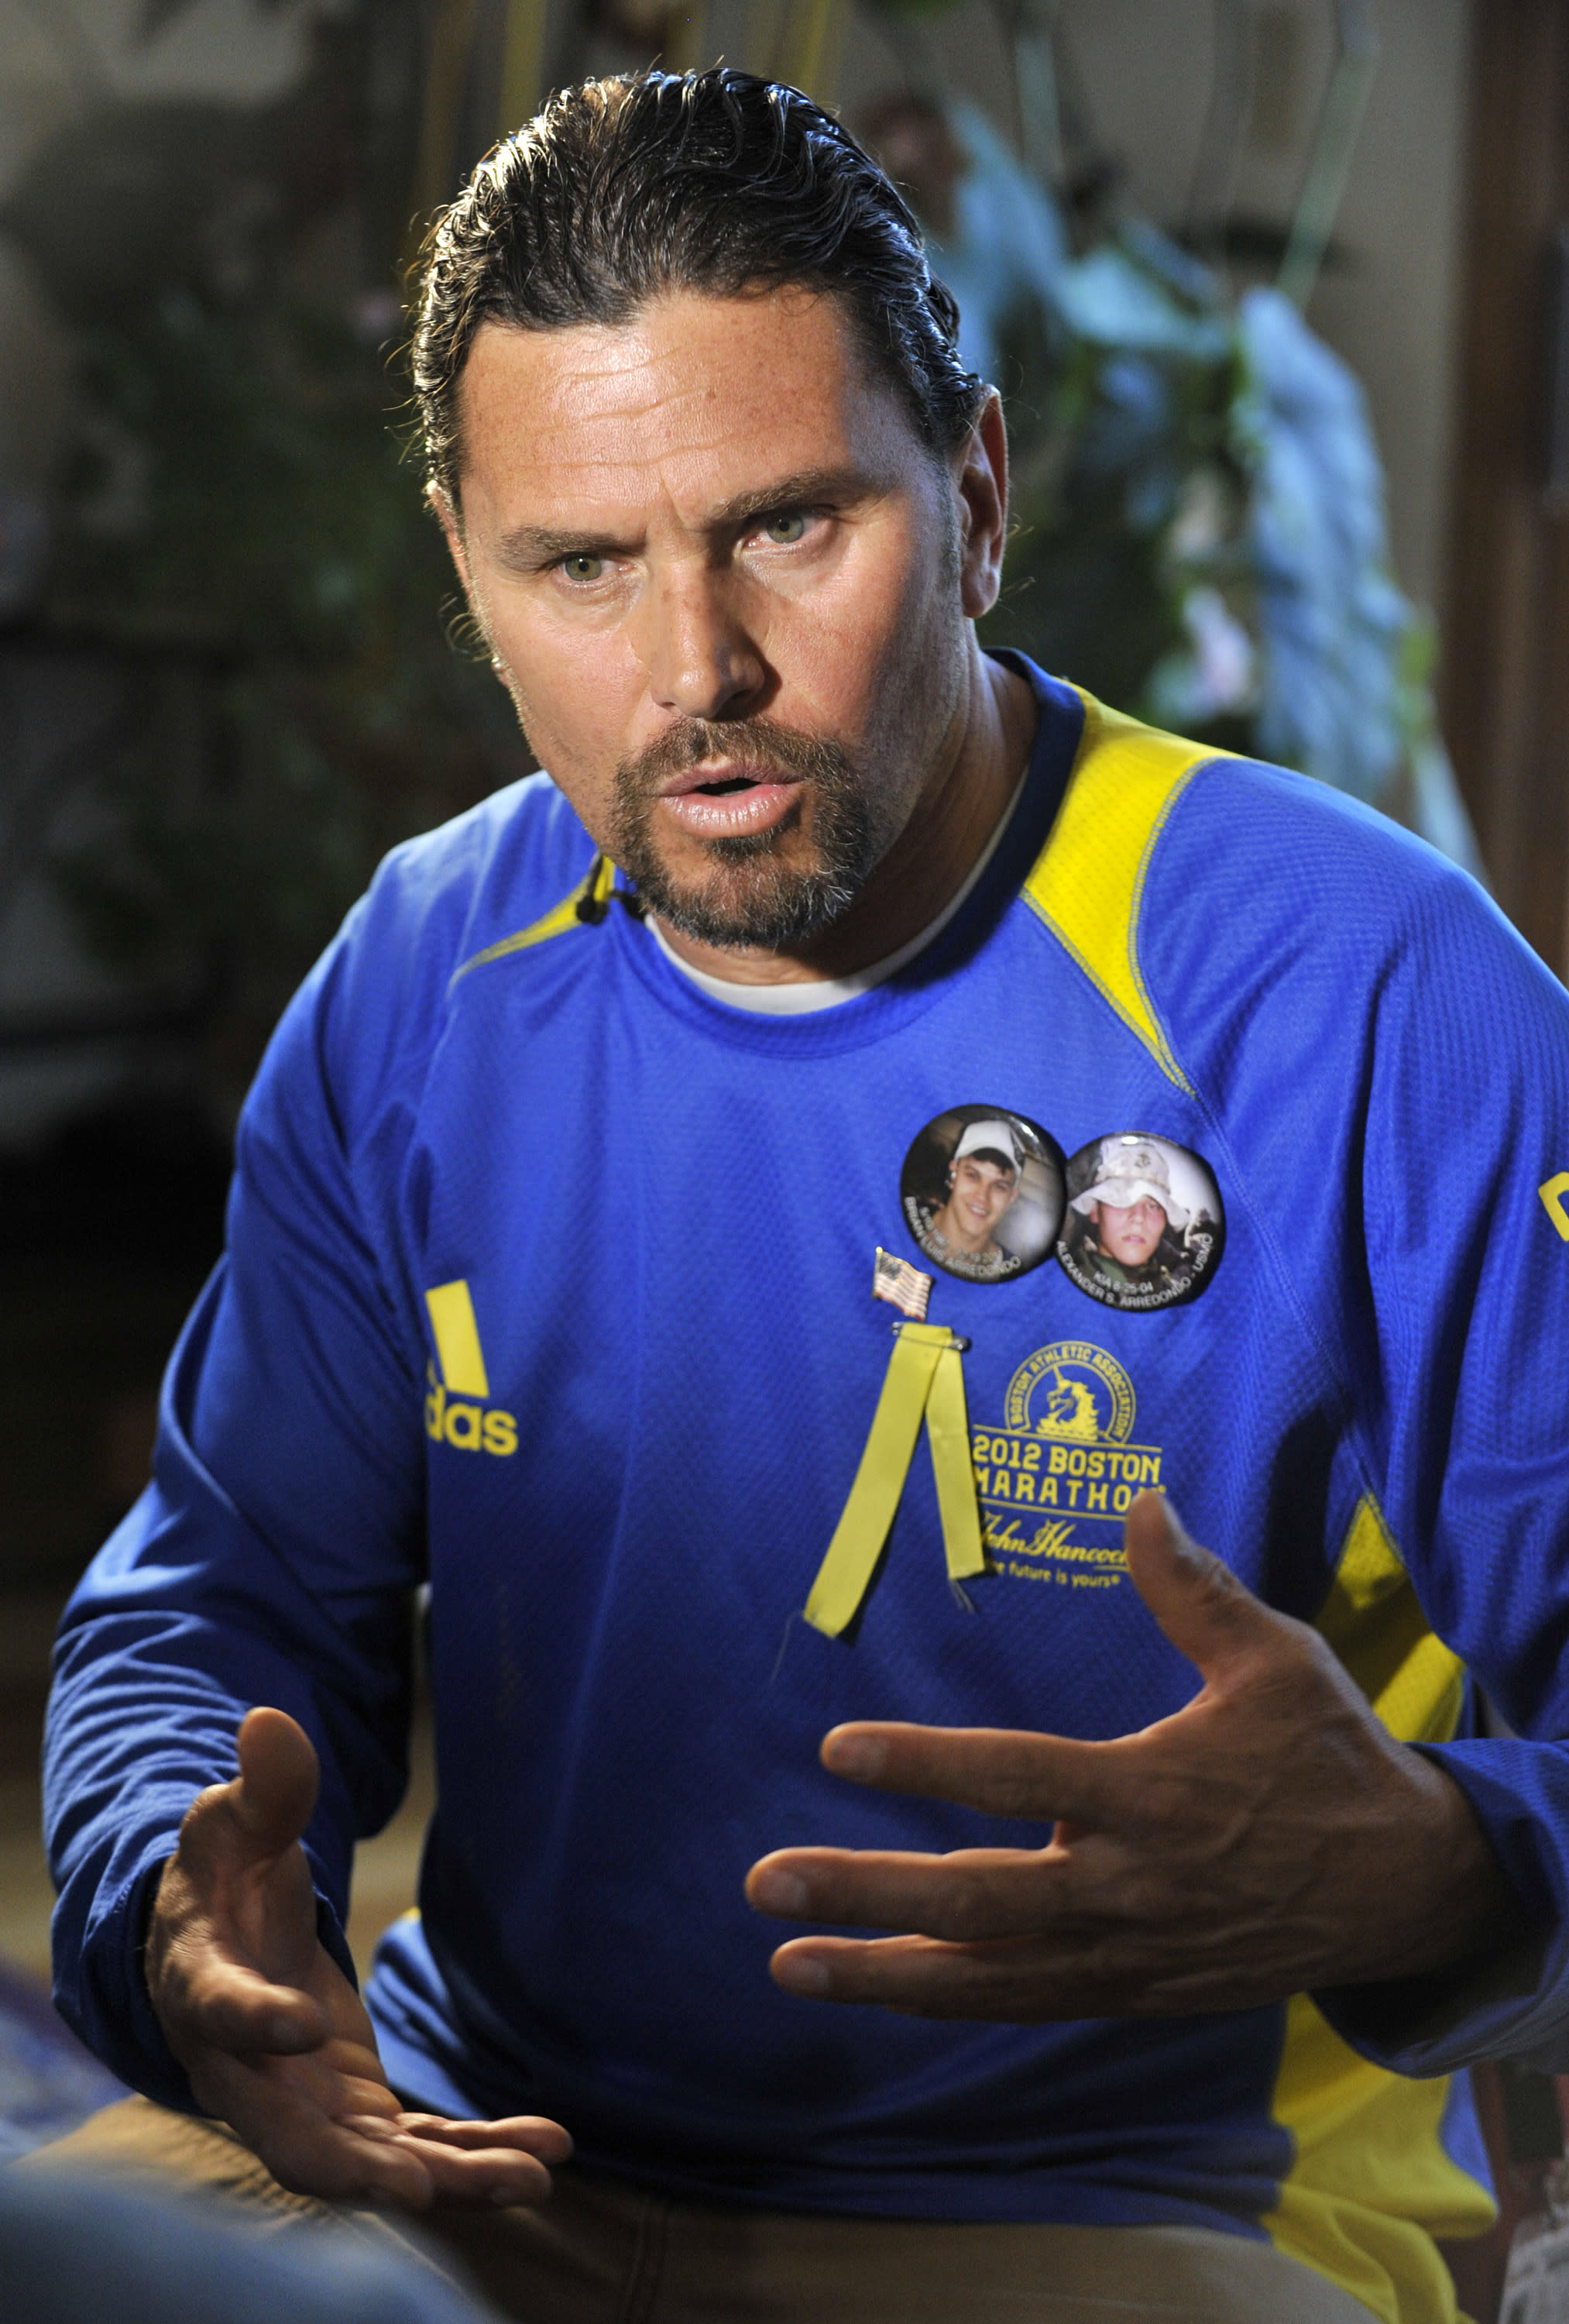 Carlos Arredondo speaks to a reporter inside his home in the Roslindale neighborhood of Boston, Wednesday, April 17, 2013. Arredondo, a peace activist whose son was killed during the Iraq war, was near the explosions and assisted victims after a pair of bombs exploded at the finish line of the Boston Marathon. (AP Photo/Josh Reynolds)